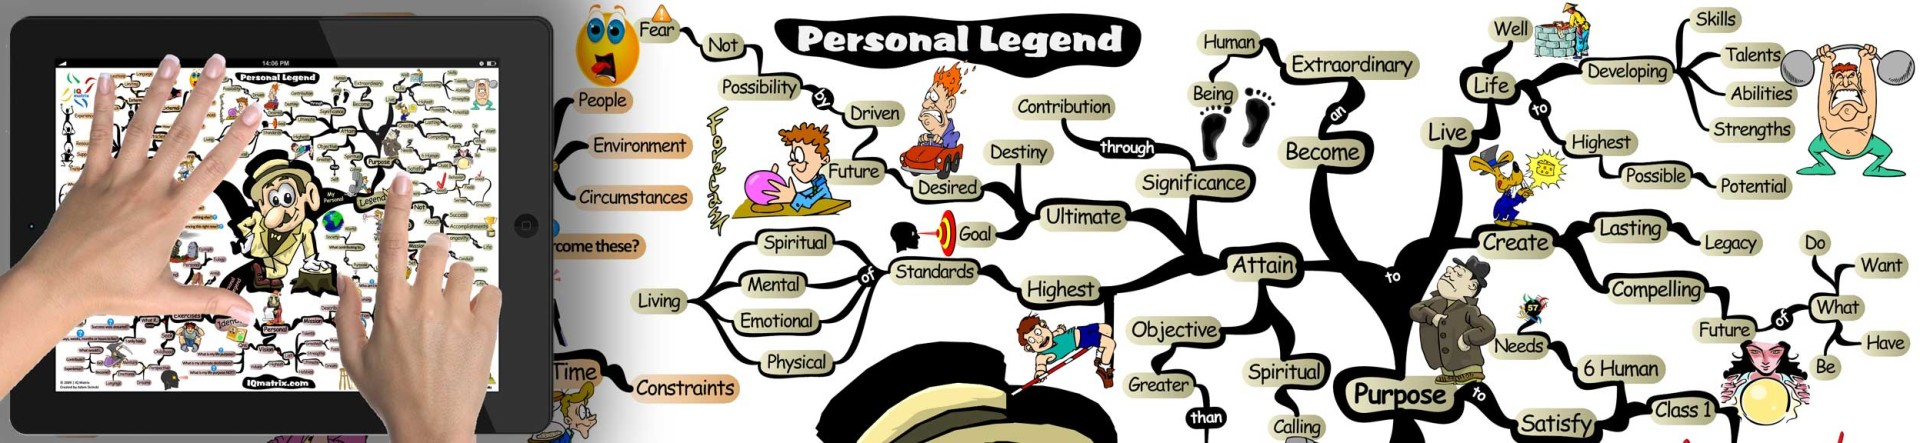 my personal legend essay I enjoyed doing this project because it kind of gave me an idea of what i want do when i grow up it helped me understand what my personal legend could be.